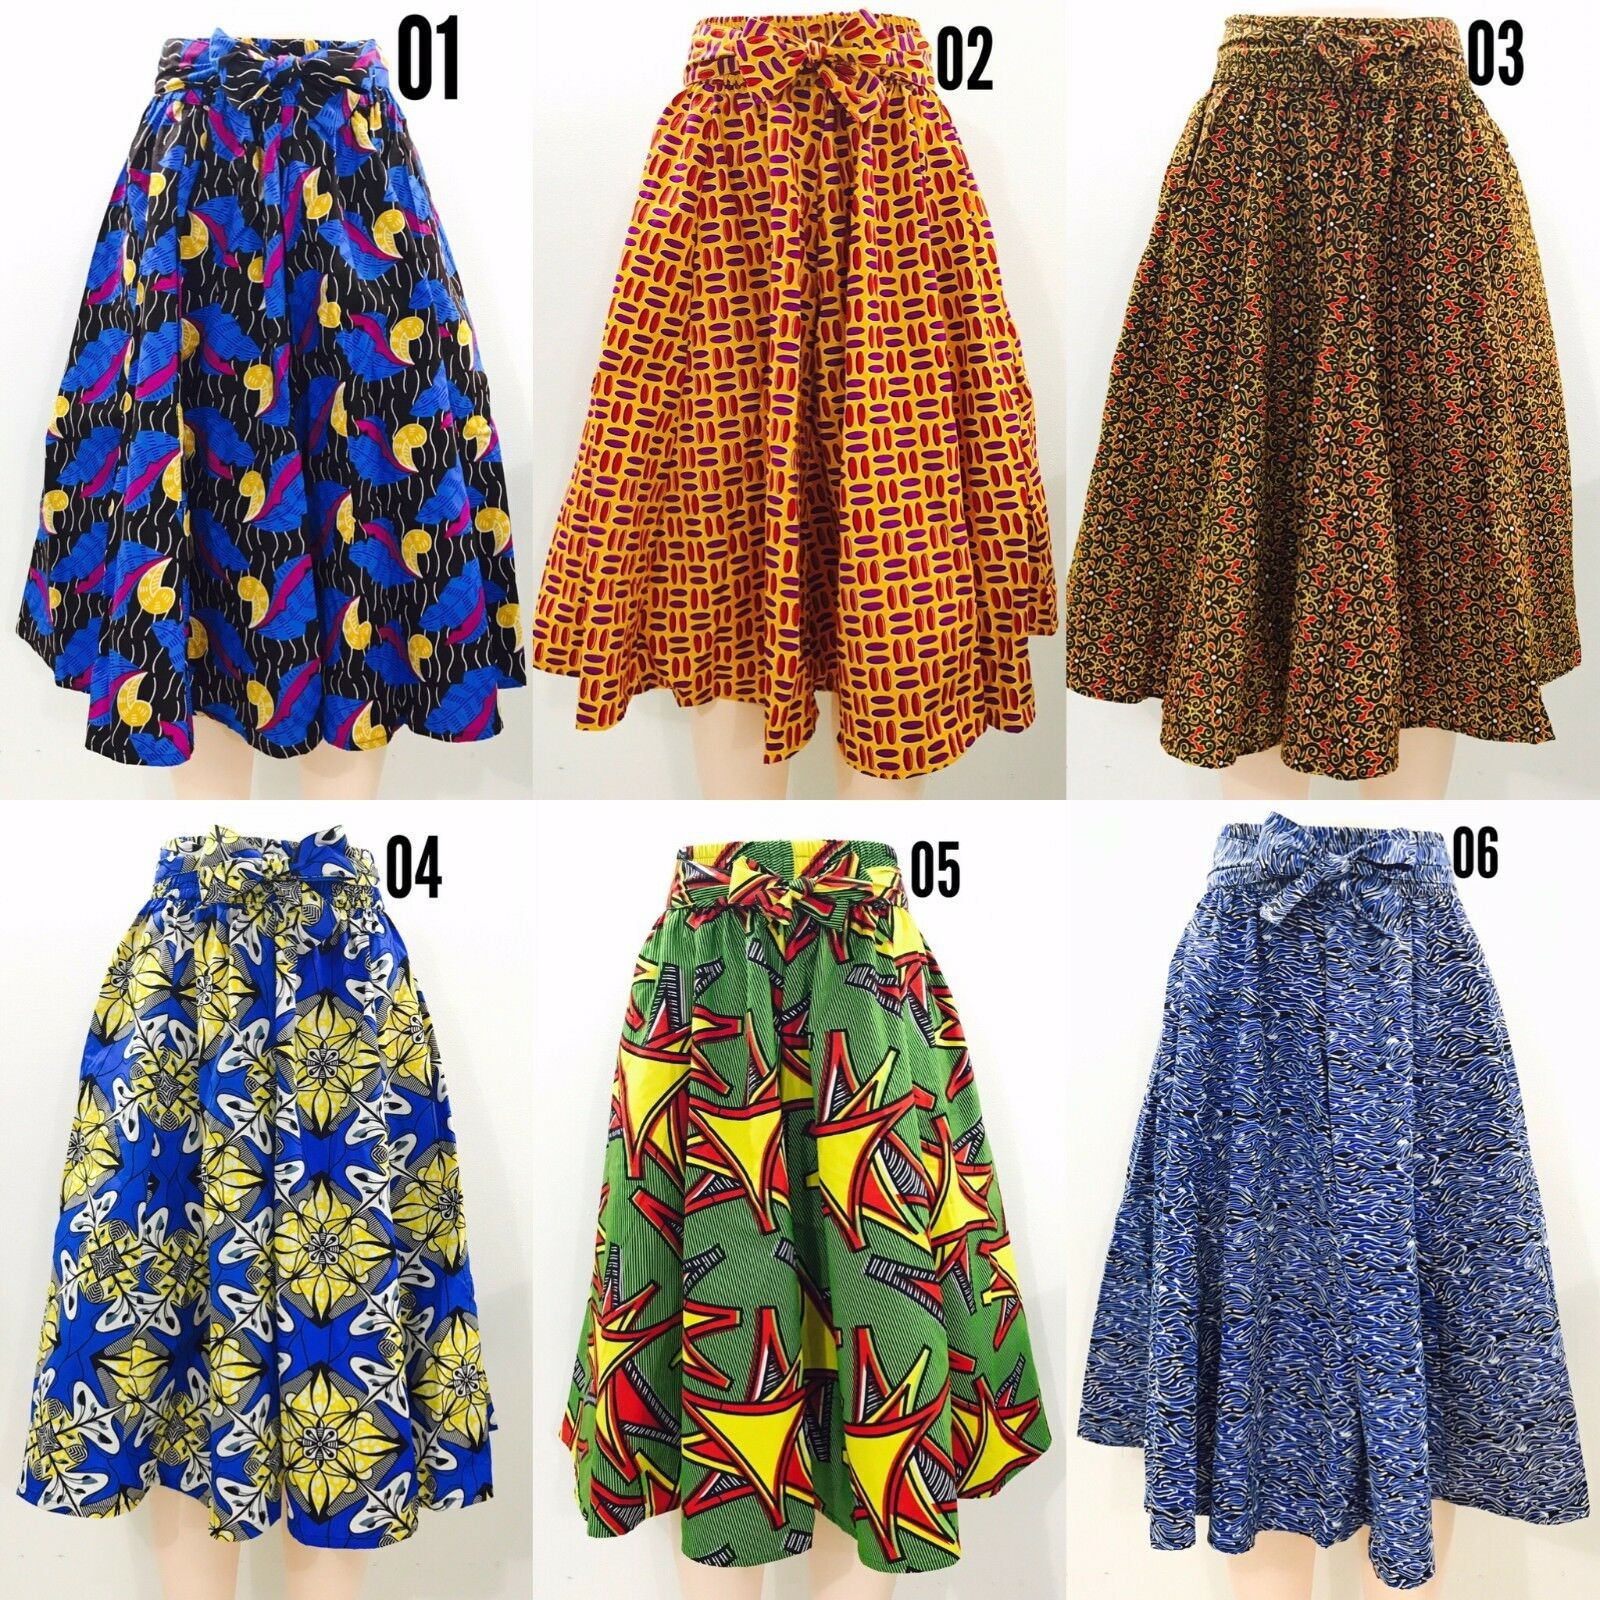 Women's Printed African Midi Skirt WITH POCKETS One Size + HEADWRAP